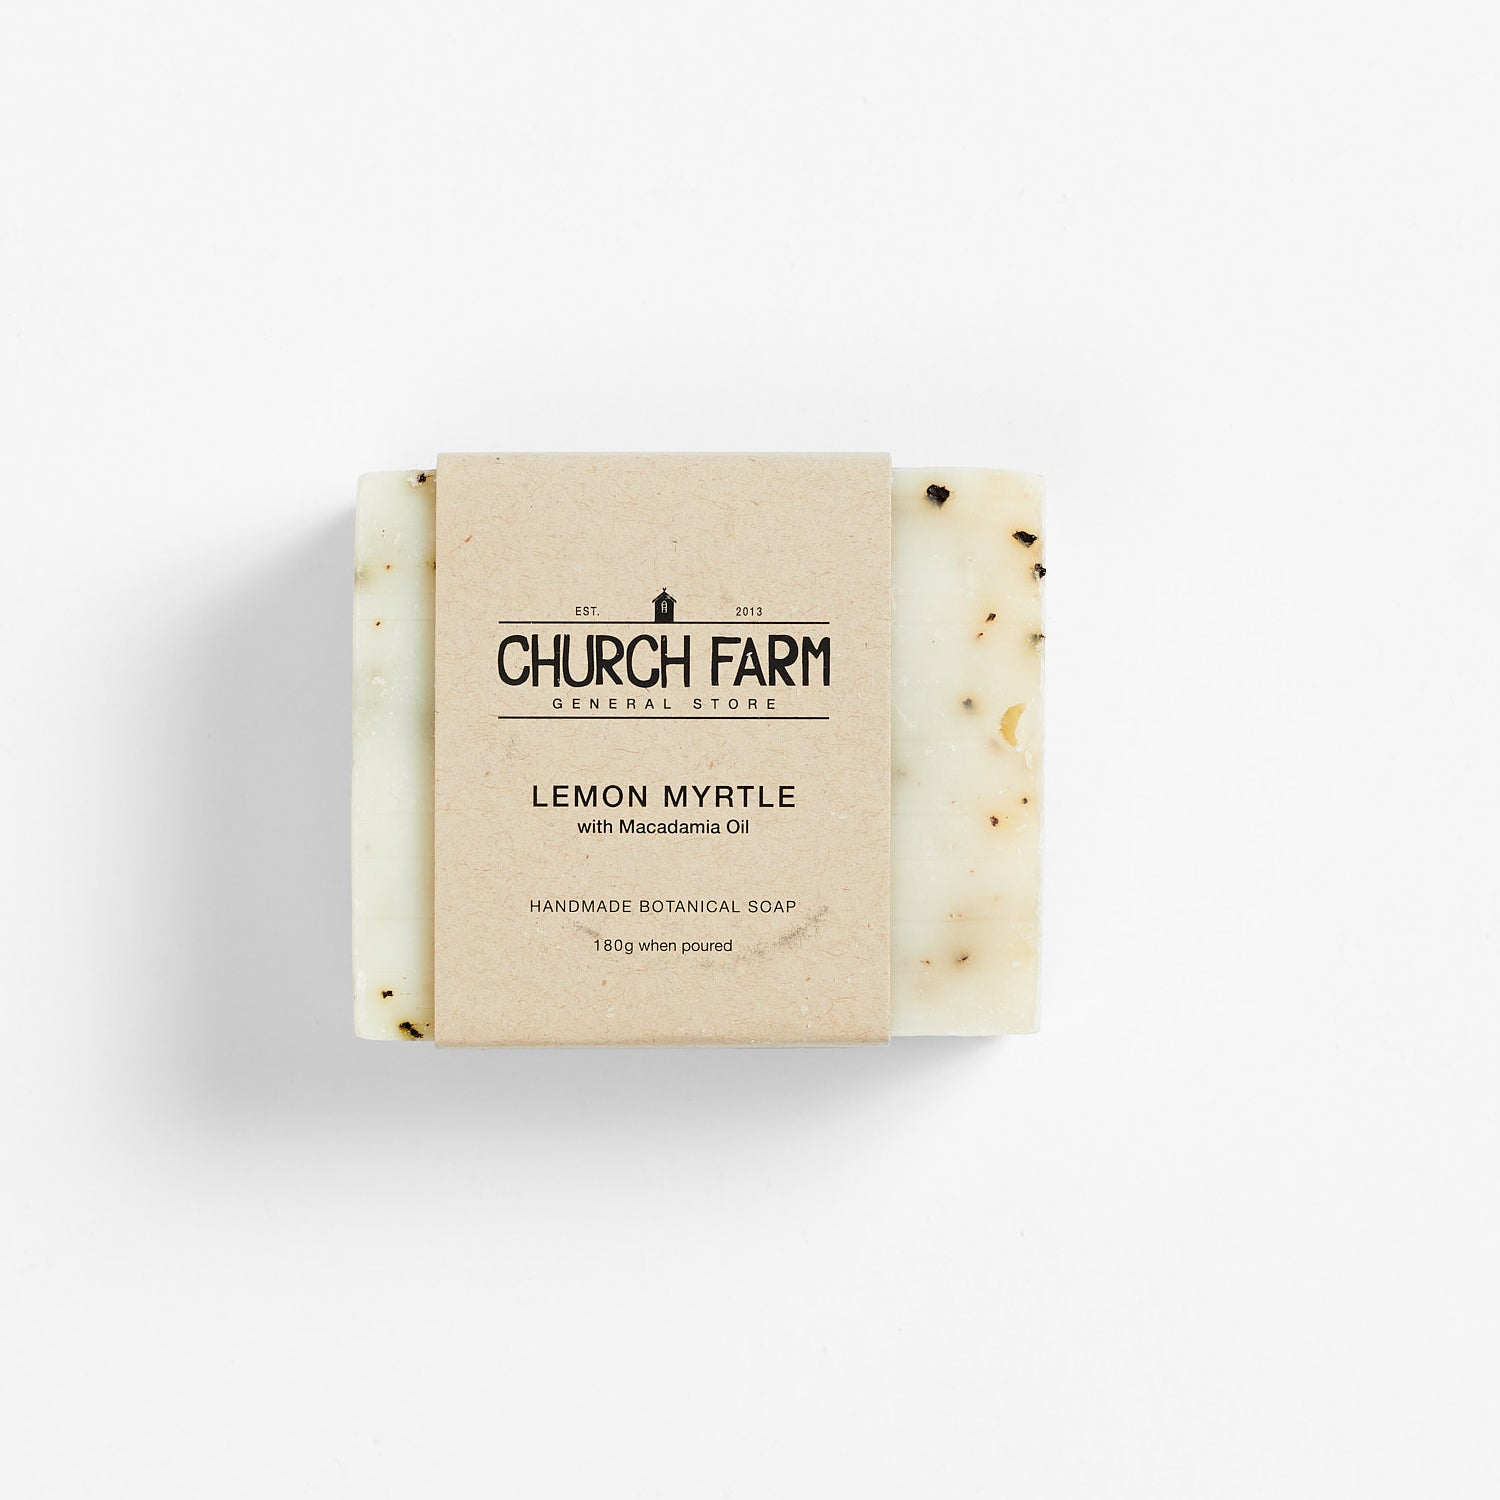 Church Farm Botanical Soap - Lemon Myrtle with Macadamia Oil